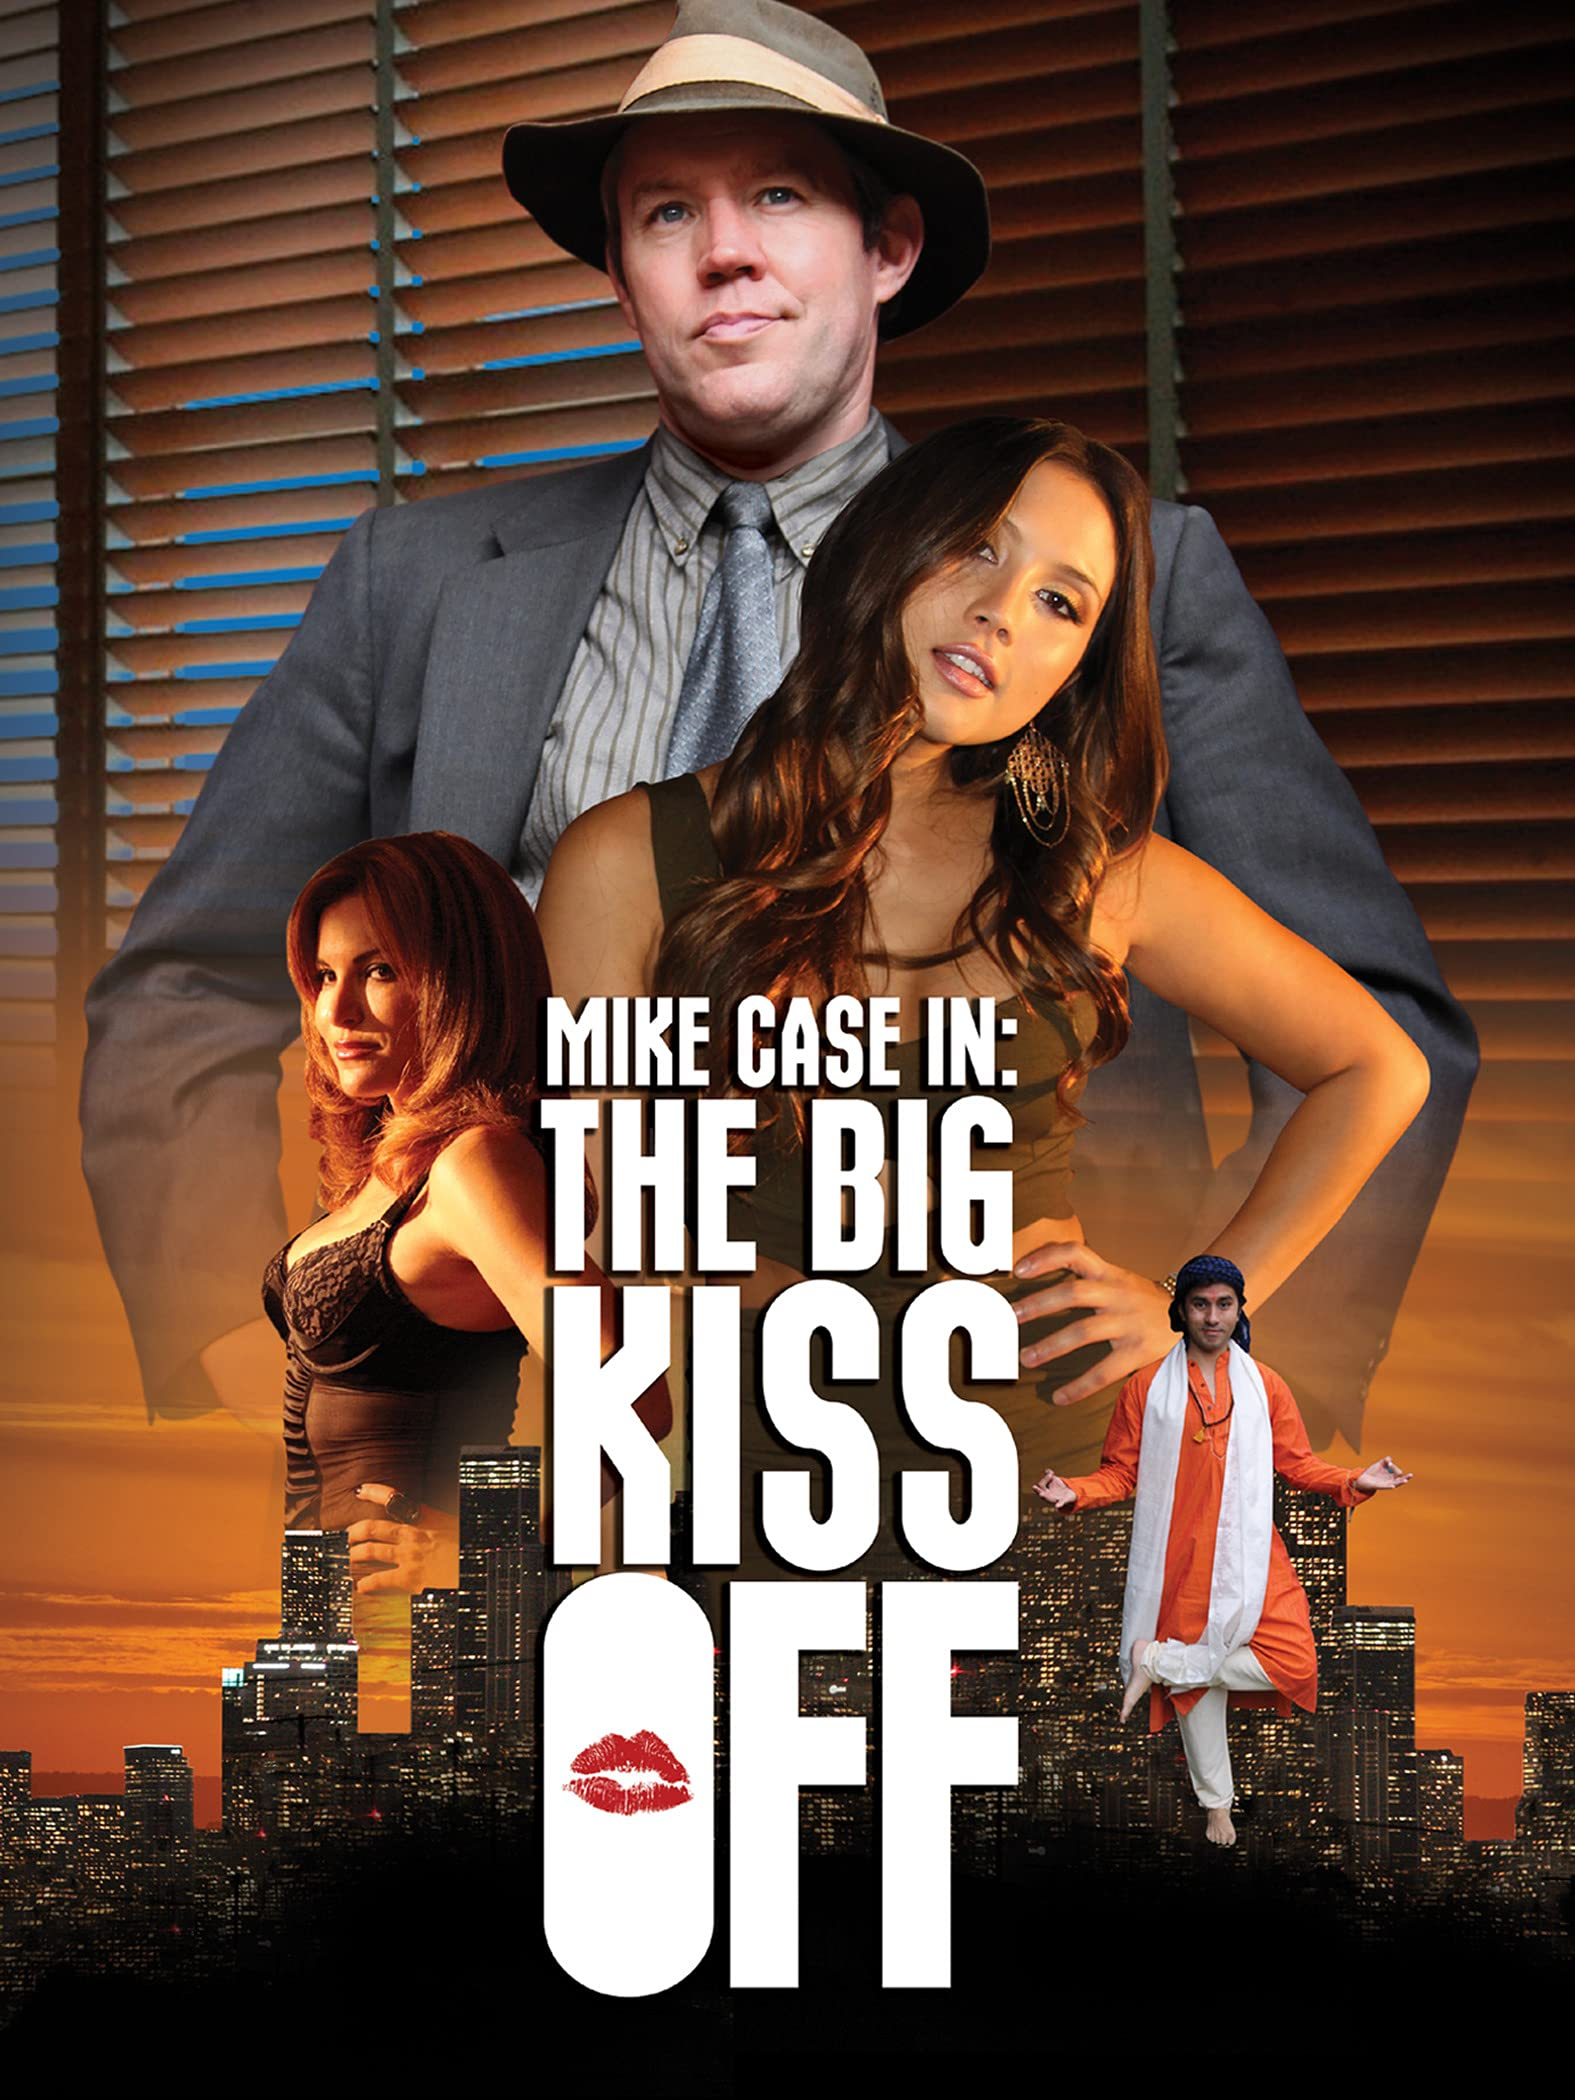 Mike Case in: The Big Kiss Off on Amazon Prime Video UK